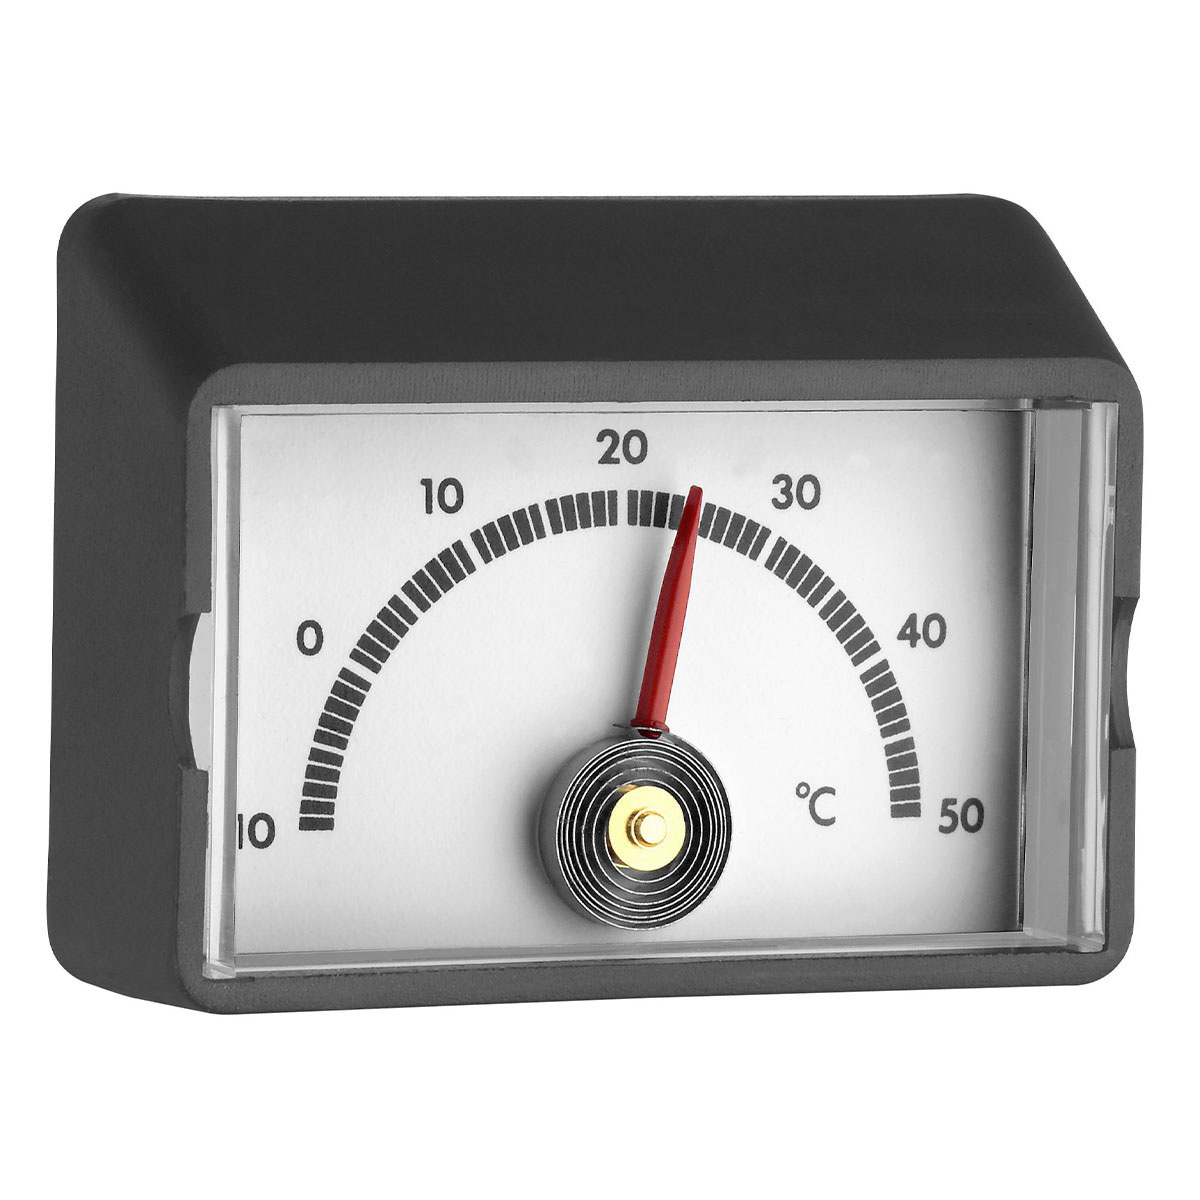 19-2010-analoges-thermometer-1200x1200px.jpg